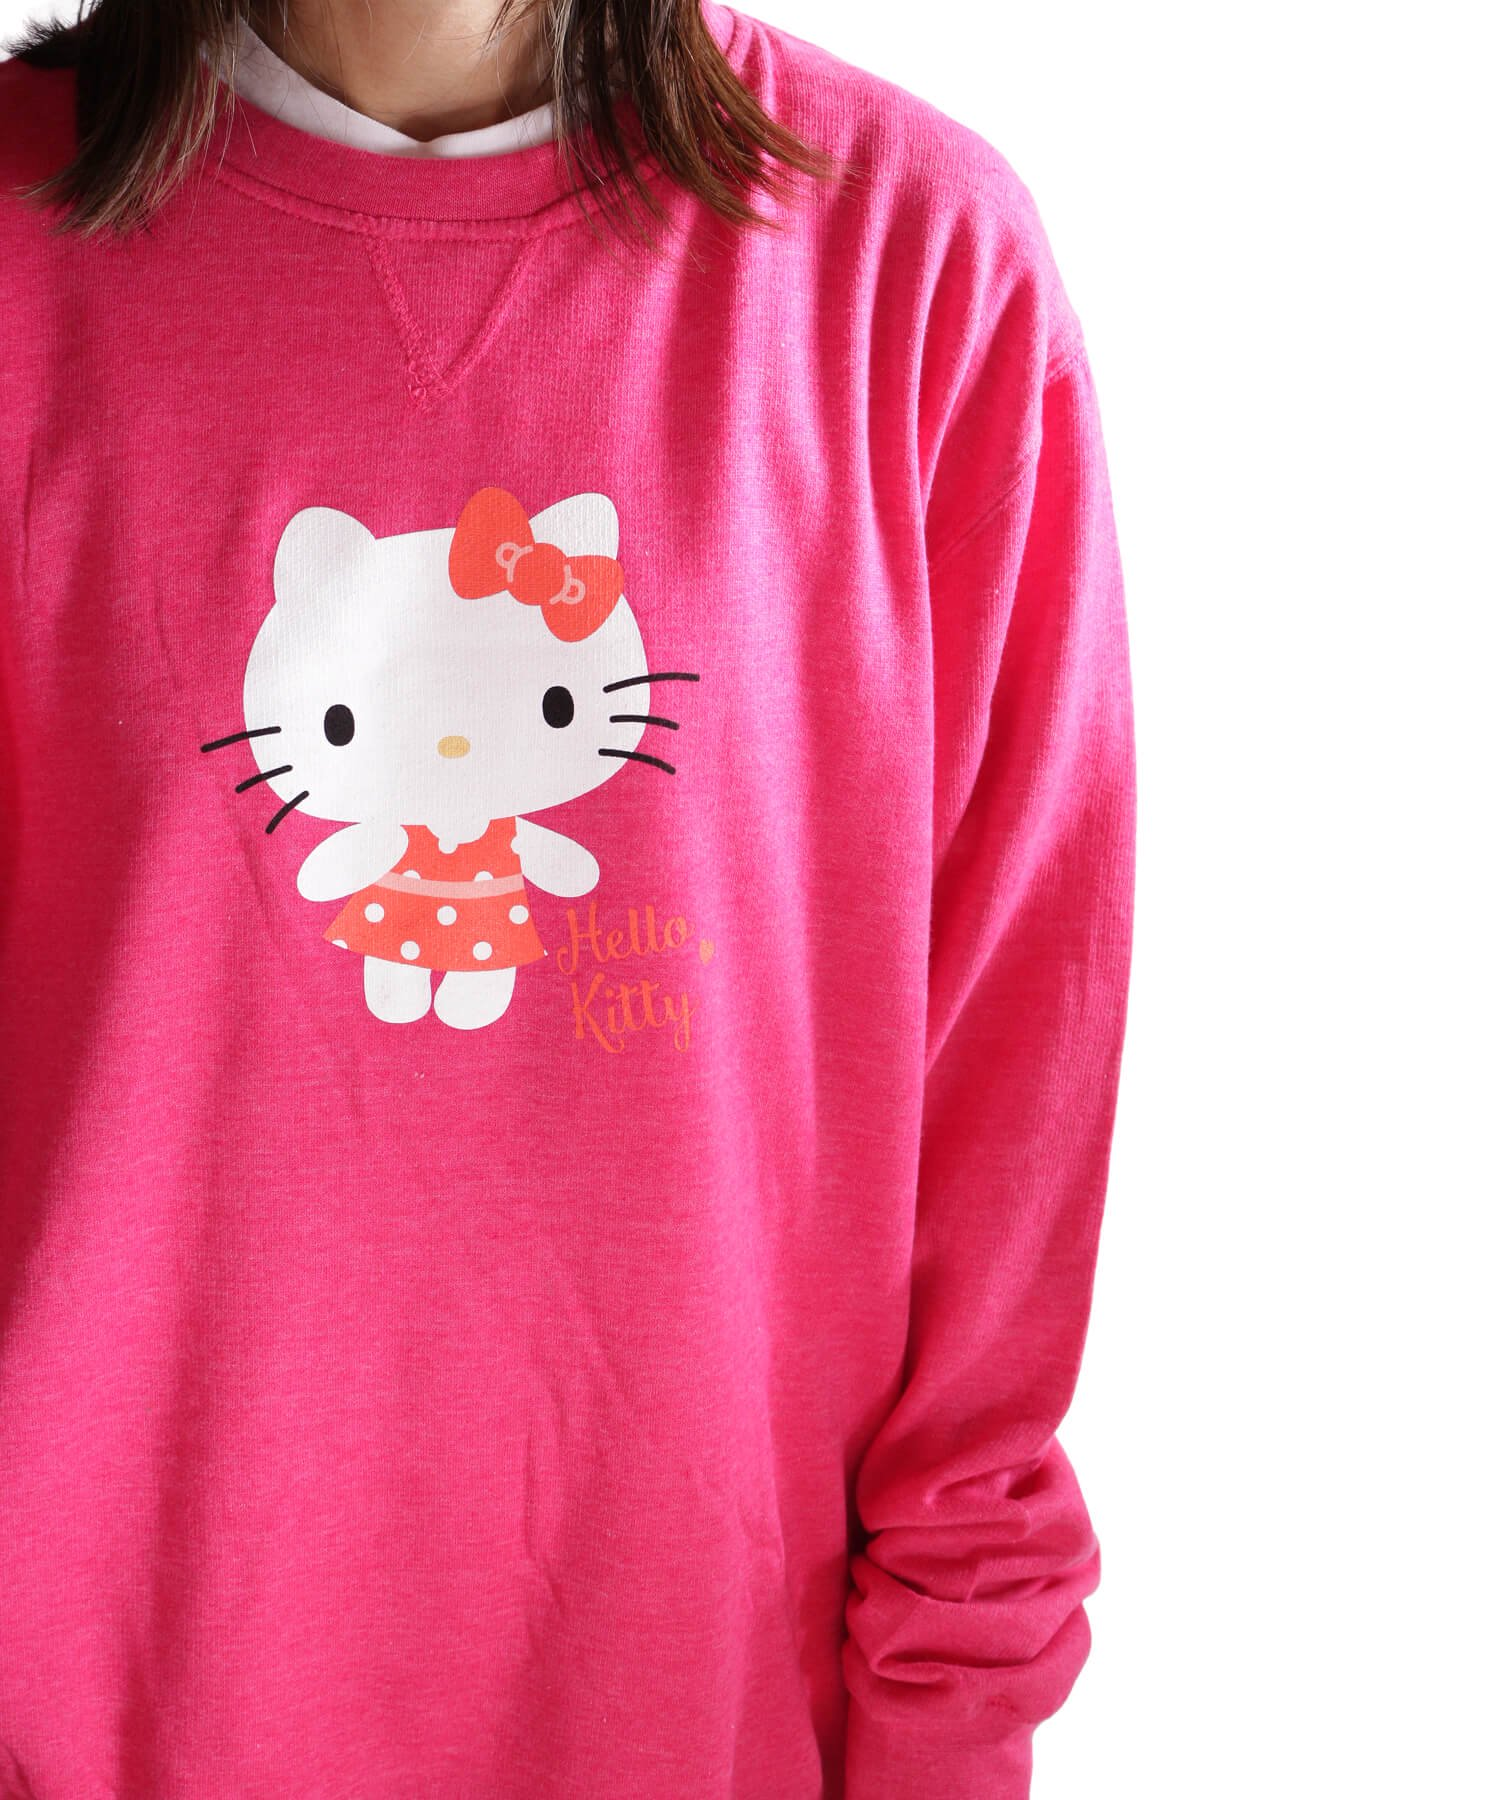 Official Artist Goods / バンドTなど  HELLO KITTY / ハローキティ:POLKA DOTS CREW NECK SWEATER (WASHED PINK) 商品画像12